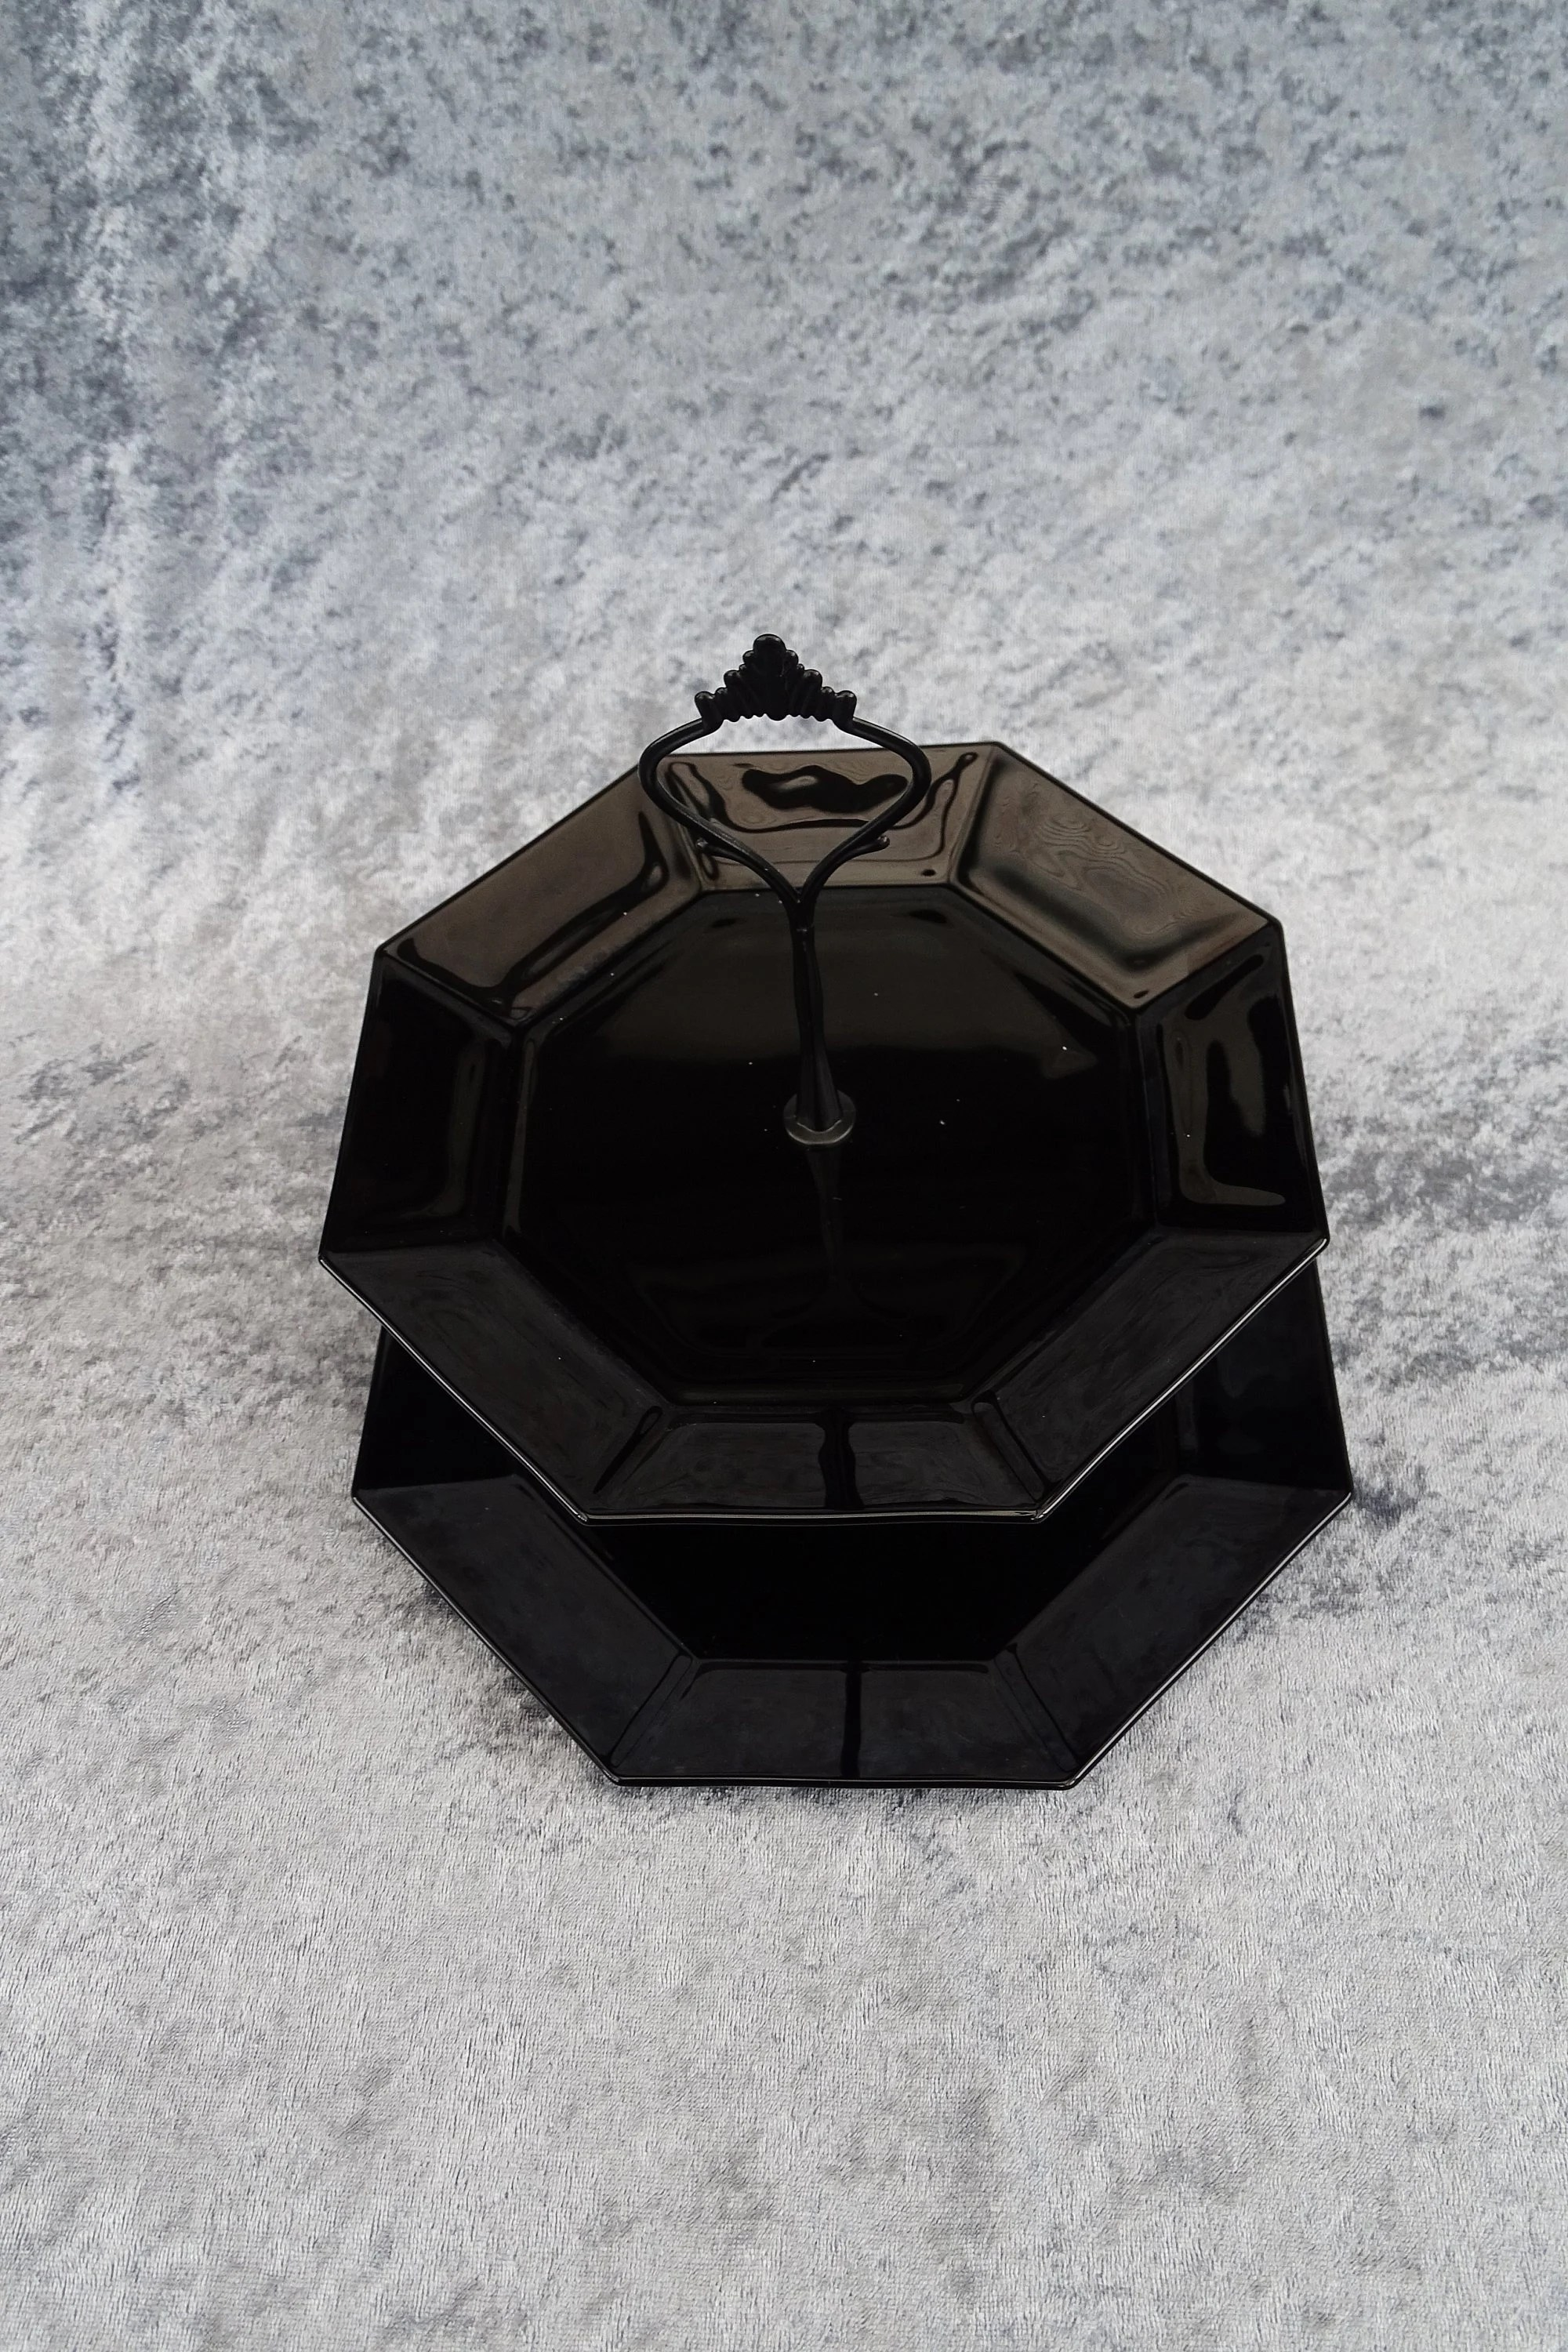 Etagere Englisch Black Étagère 2 Storey Of Octagonal Glass Tableware Jewellery Storage Plate For Cupcakes